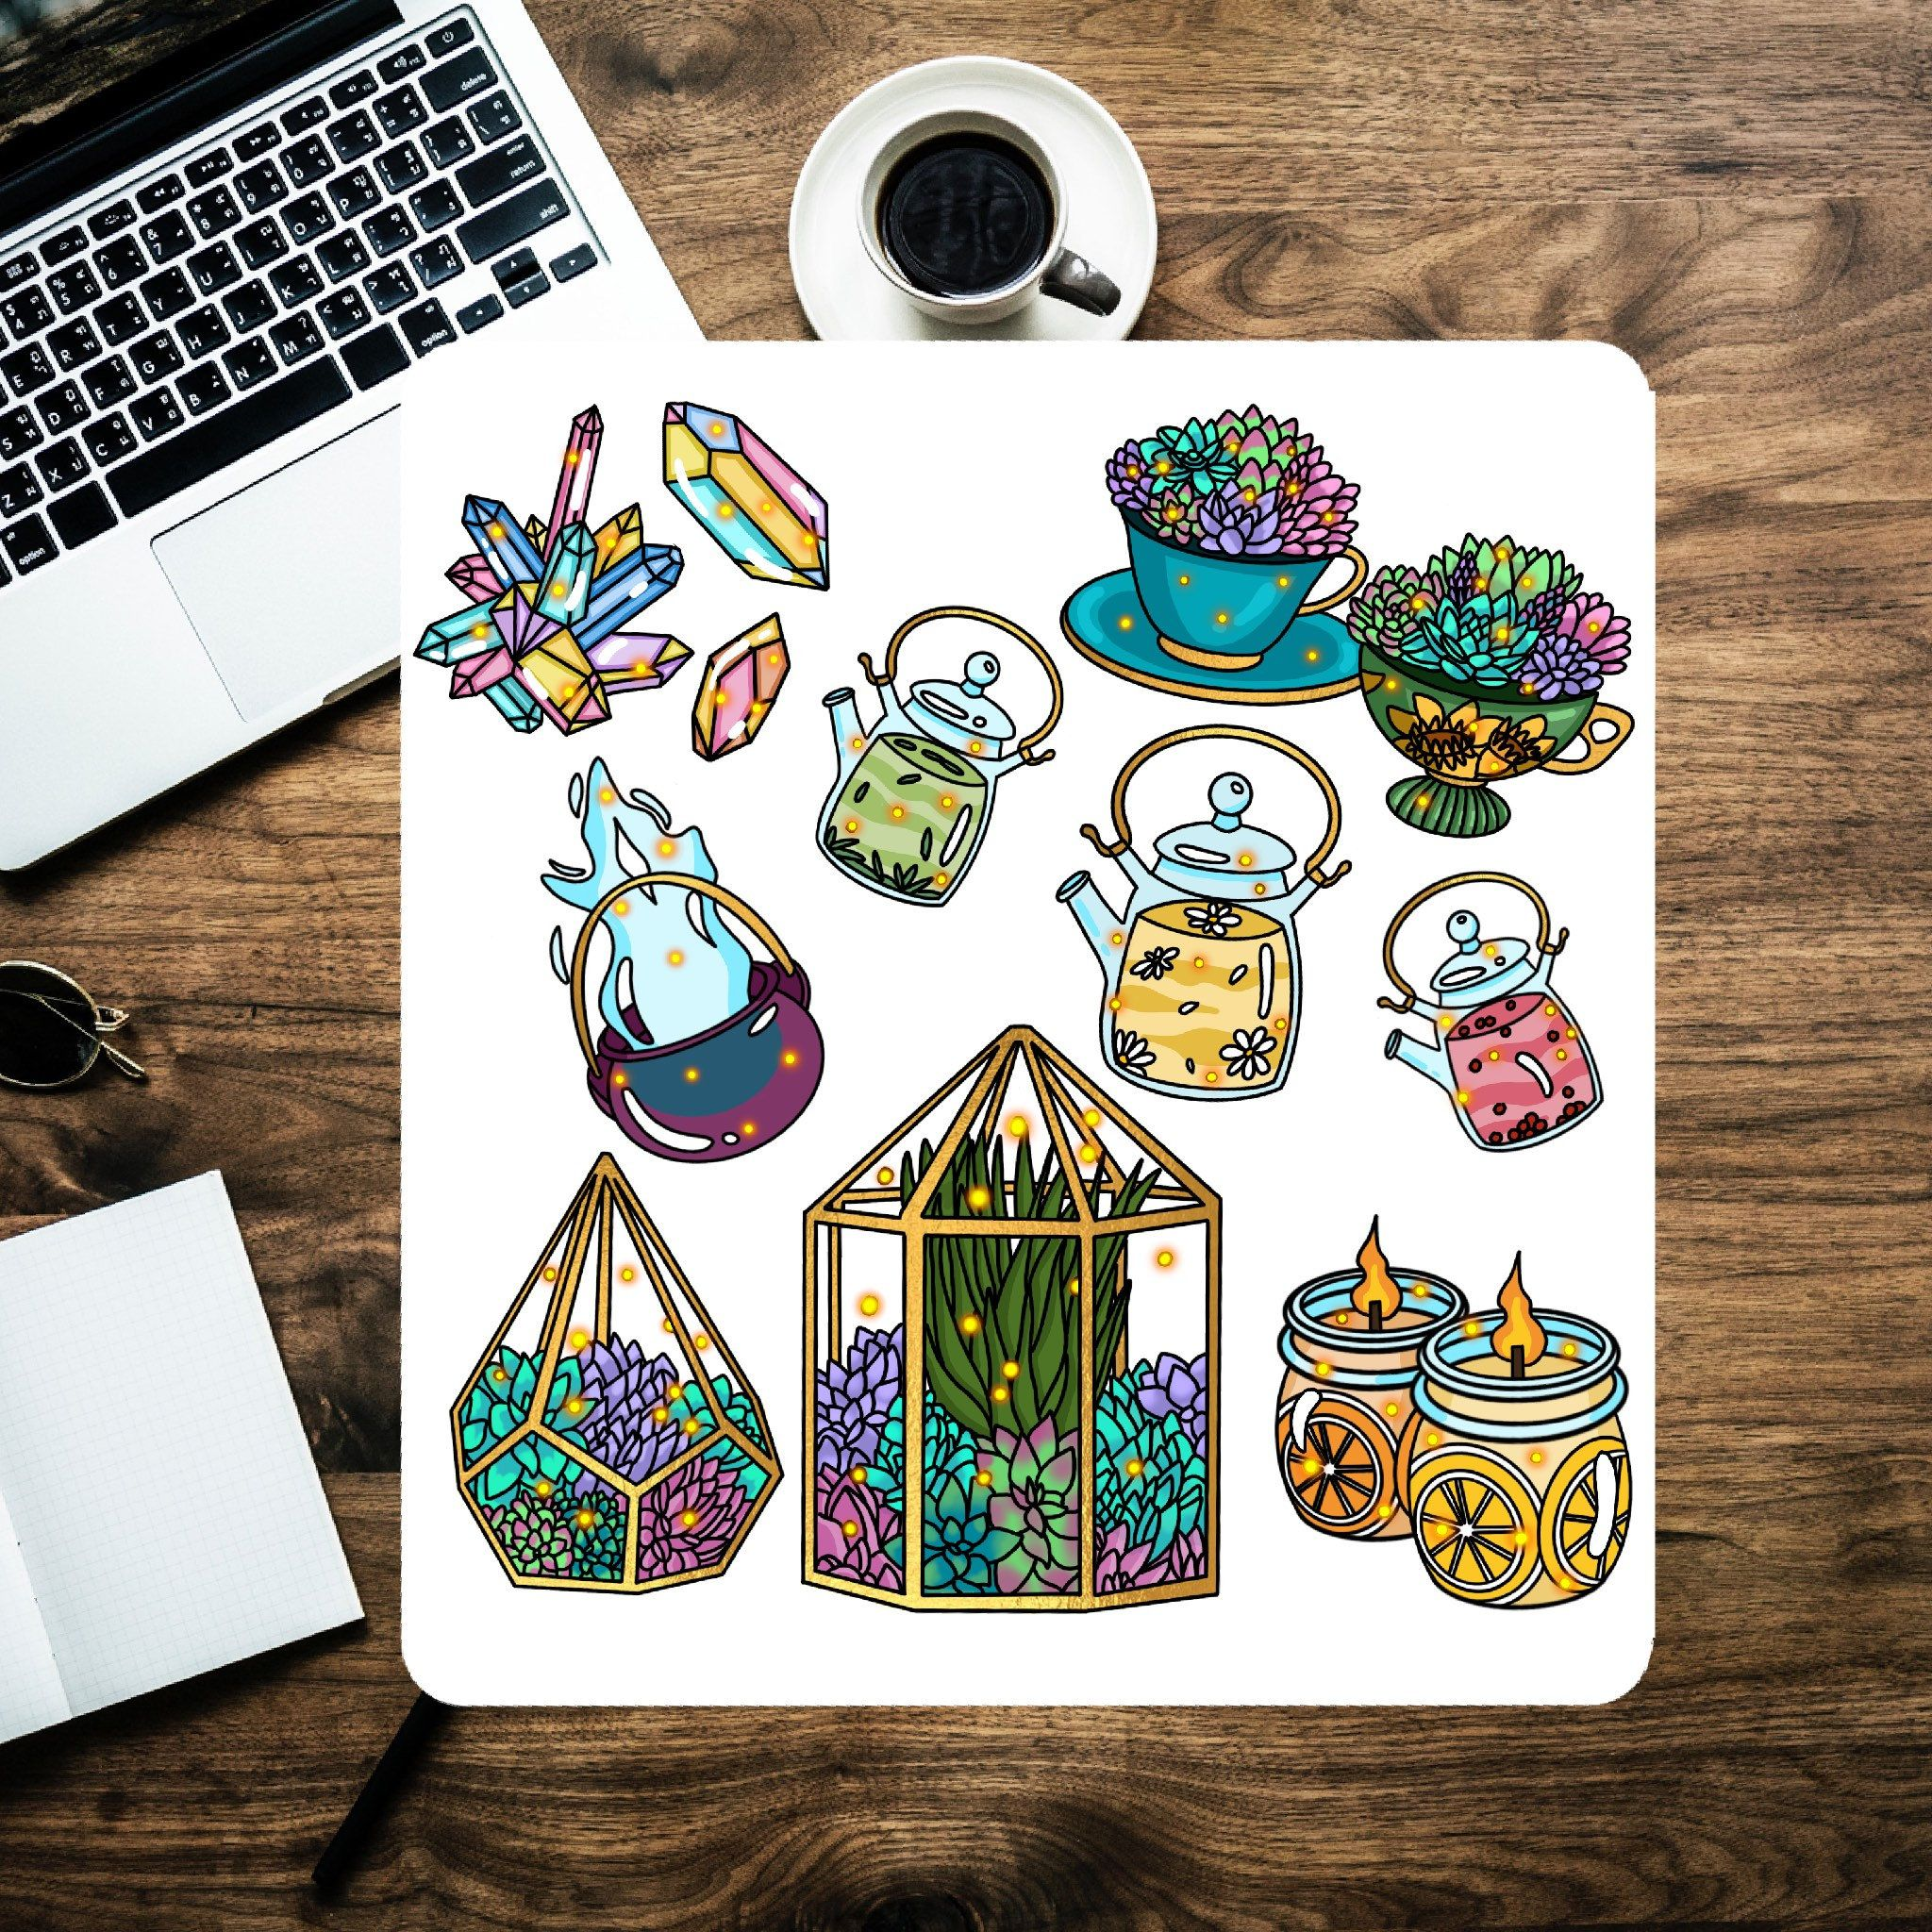 11 Pcs Cozy Witch Decorative Sticker Pack Flakes Aesthetic Vinyl Stickers For Planners And Bullet Journals Feminist Sticker Planner Stickers Crystal Stickers